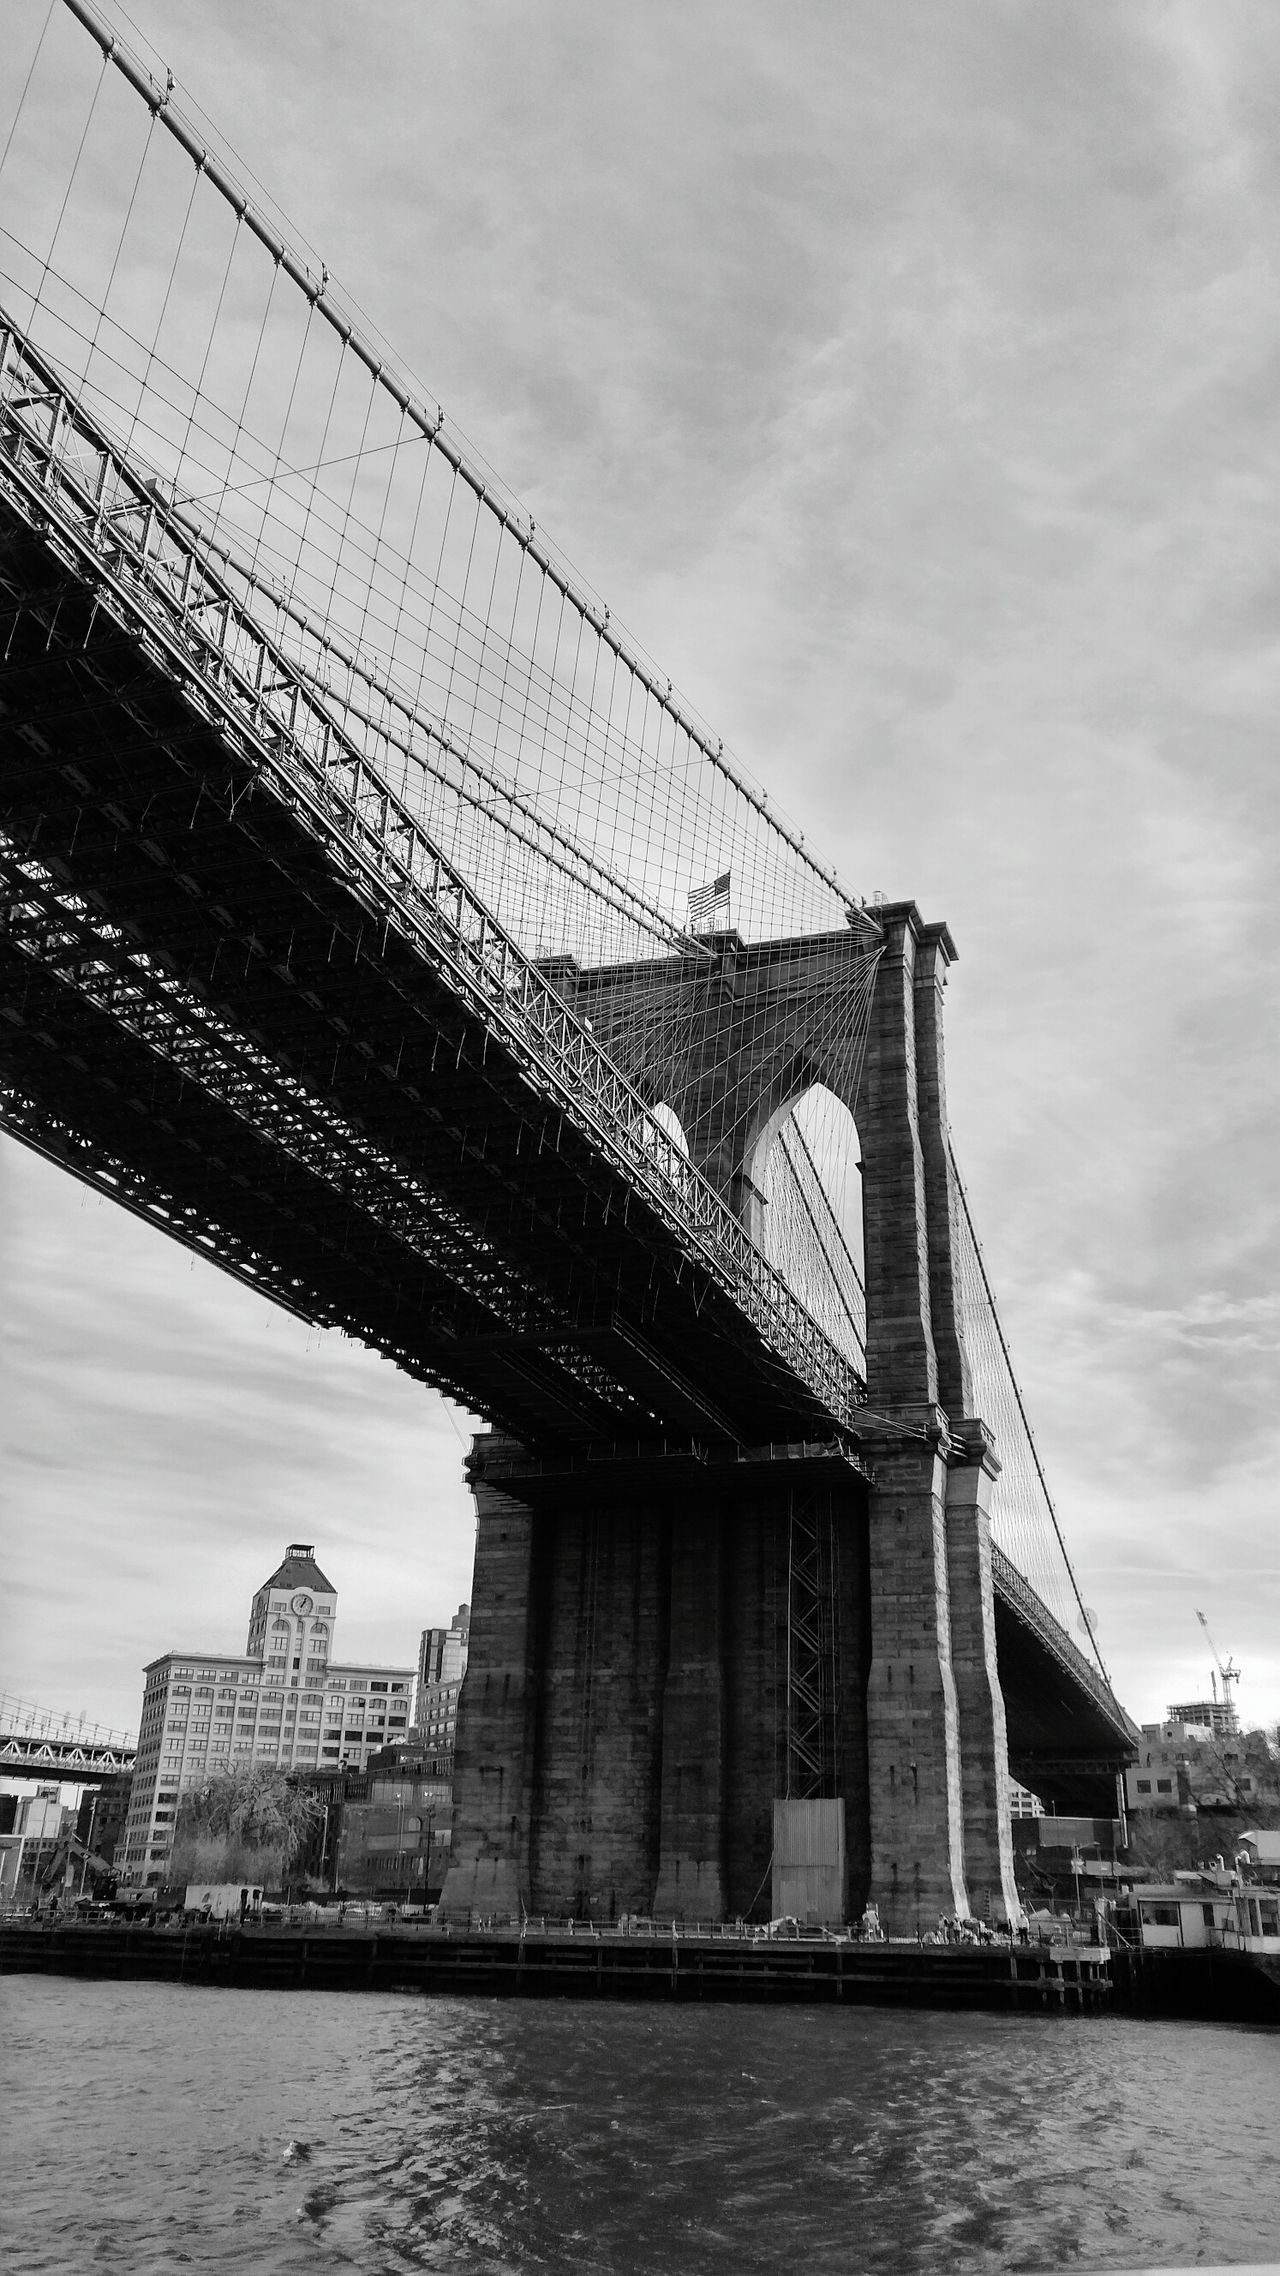 Bridge Water Travel River Bridge - Man Made Structure Architecture Travel Destinations Day Sky Boat Clouds Awesome_view New York City USA Photos